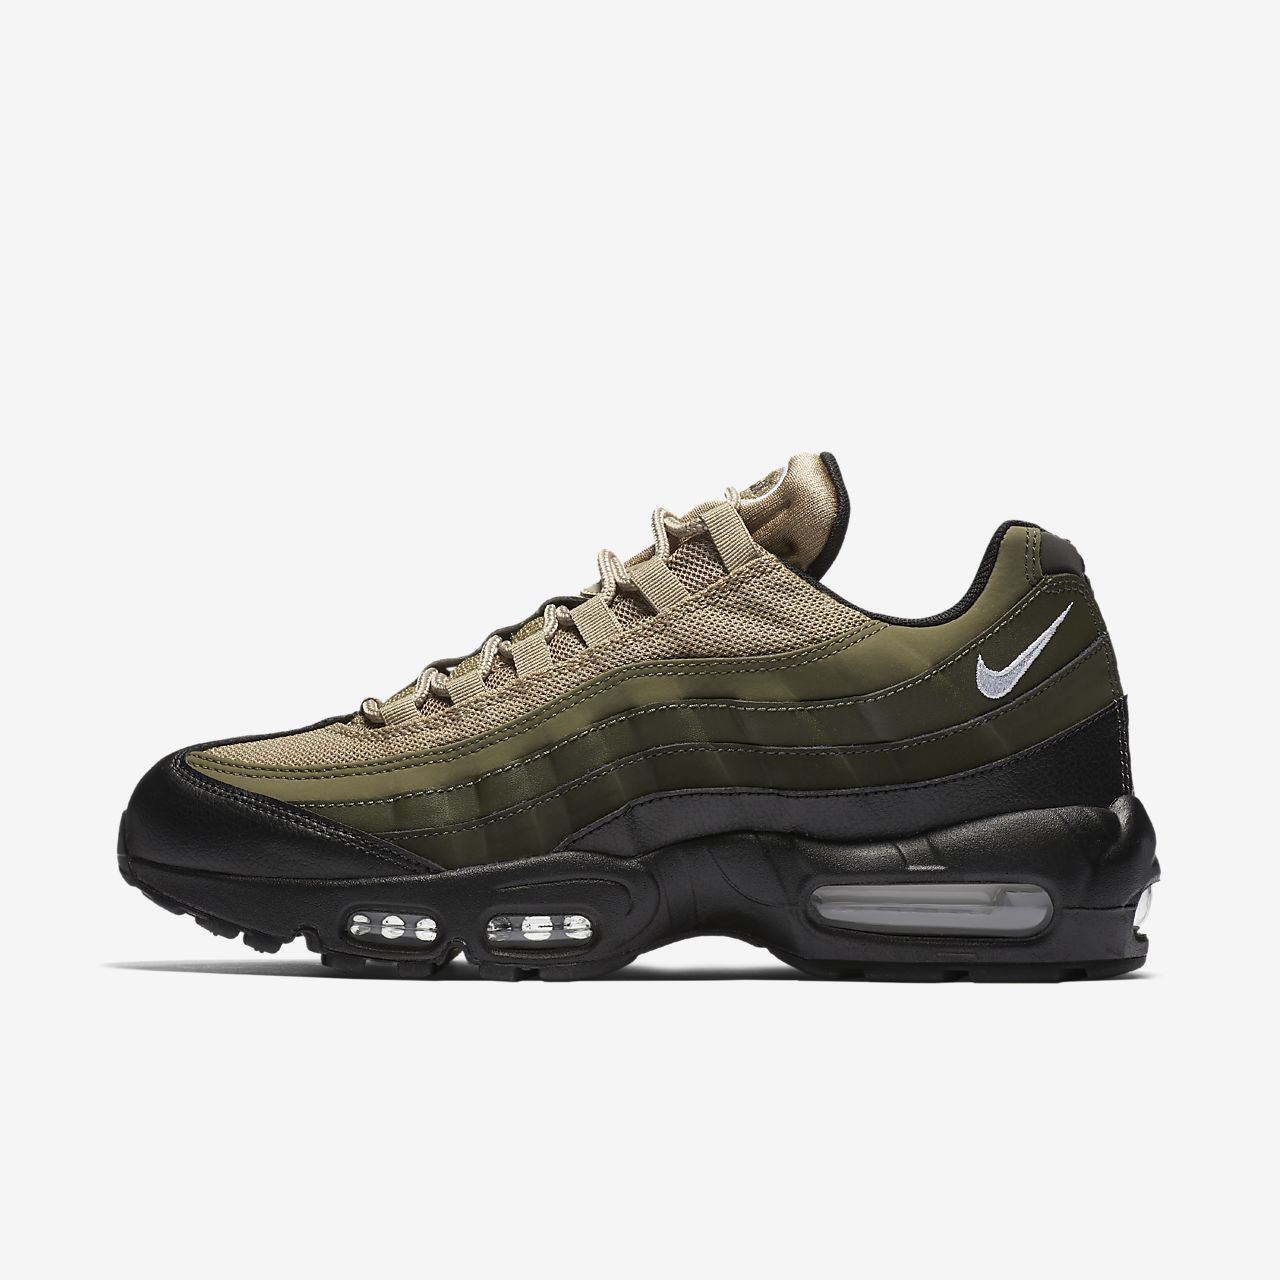 nike air max 95 essential men 39 s shoe gb. Black Bedroom Furniture Sets. Home Design Ideas